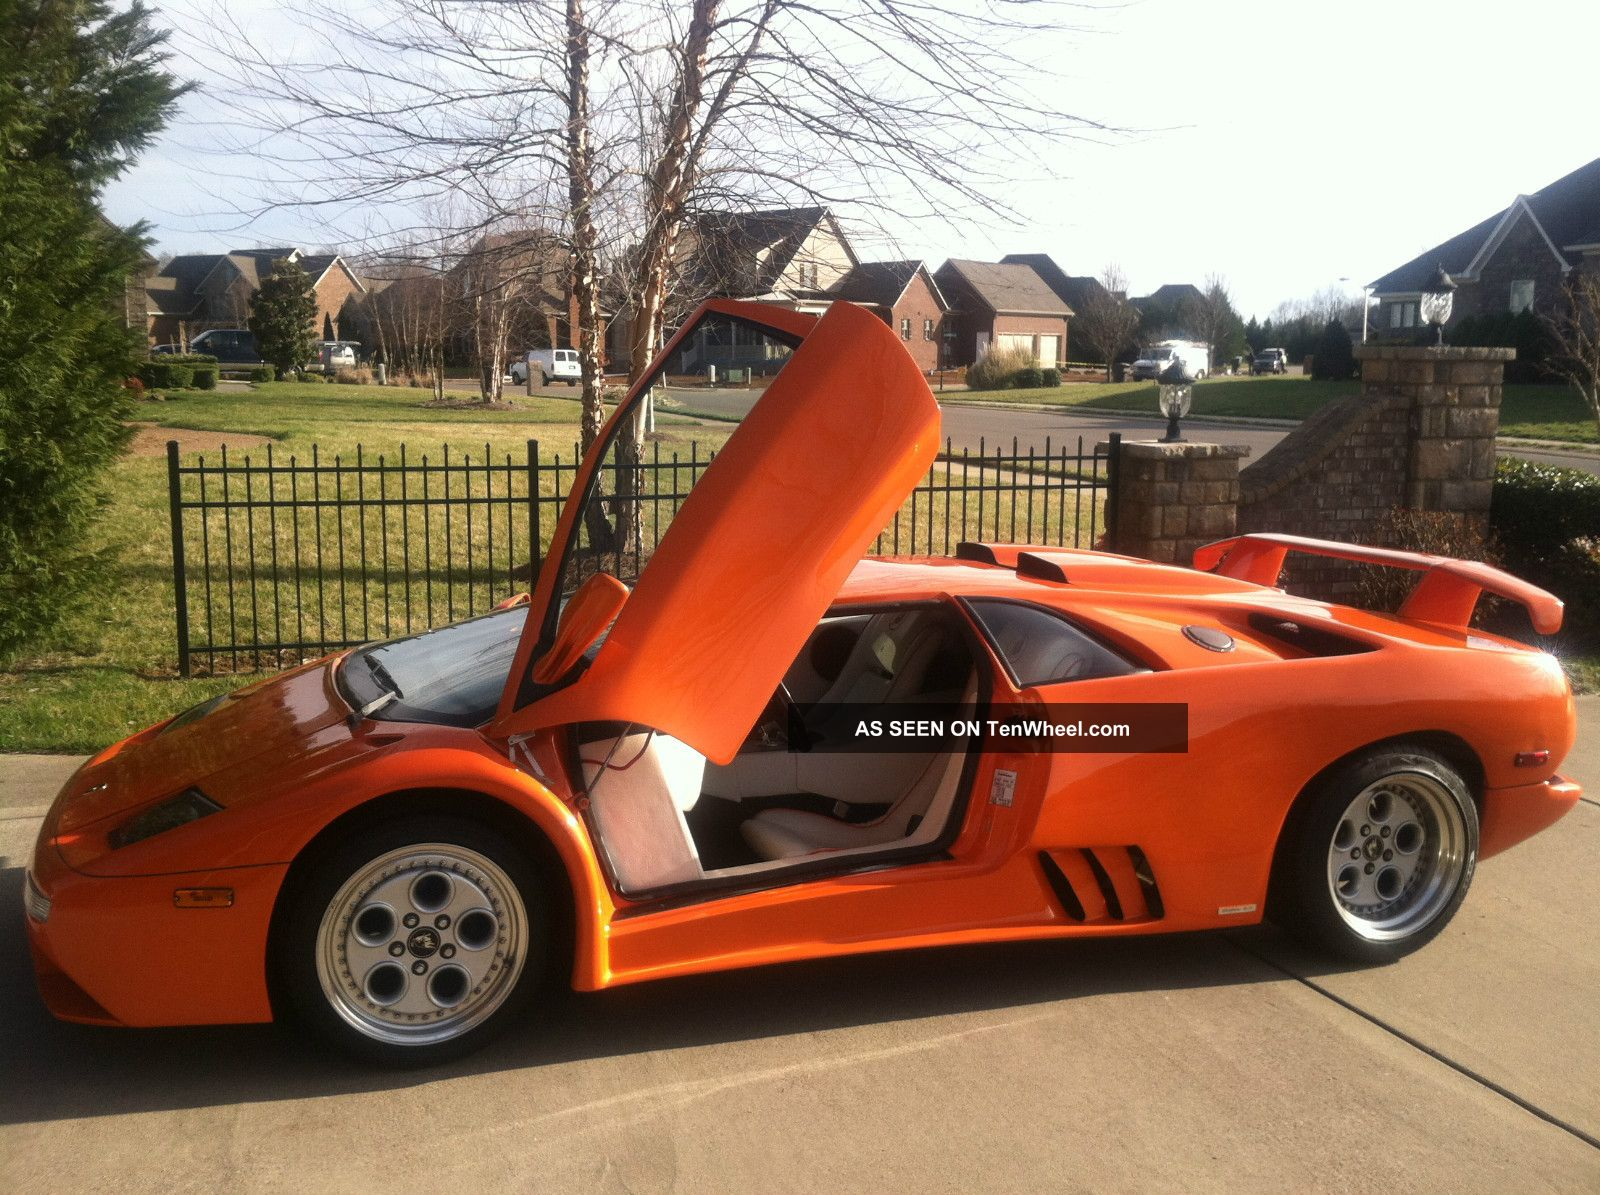 2001 Lamborghini Diablo Orange With White Interior. Replica/Kit Makes photo